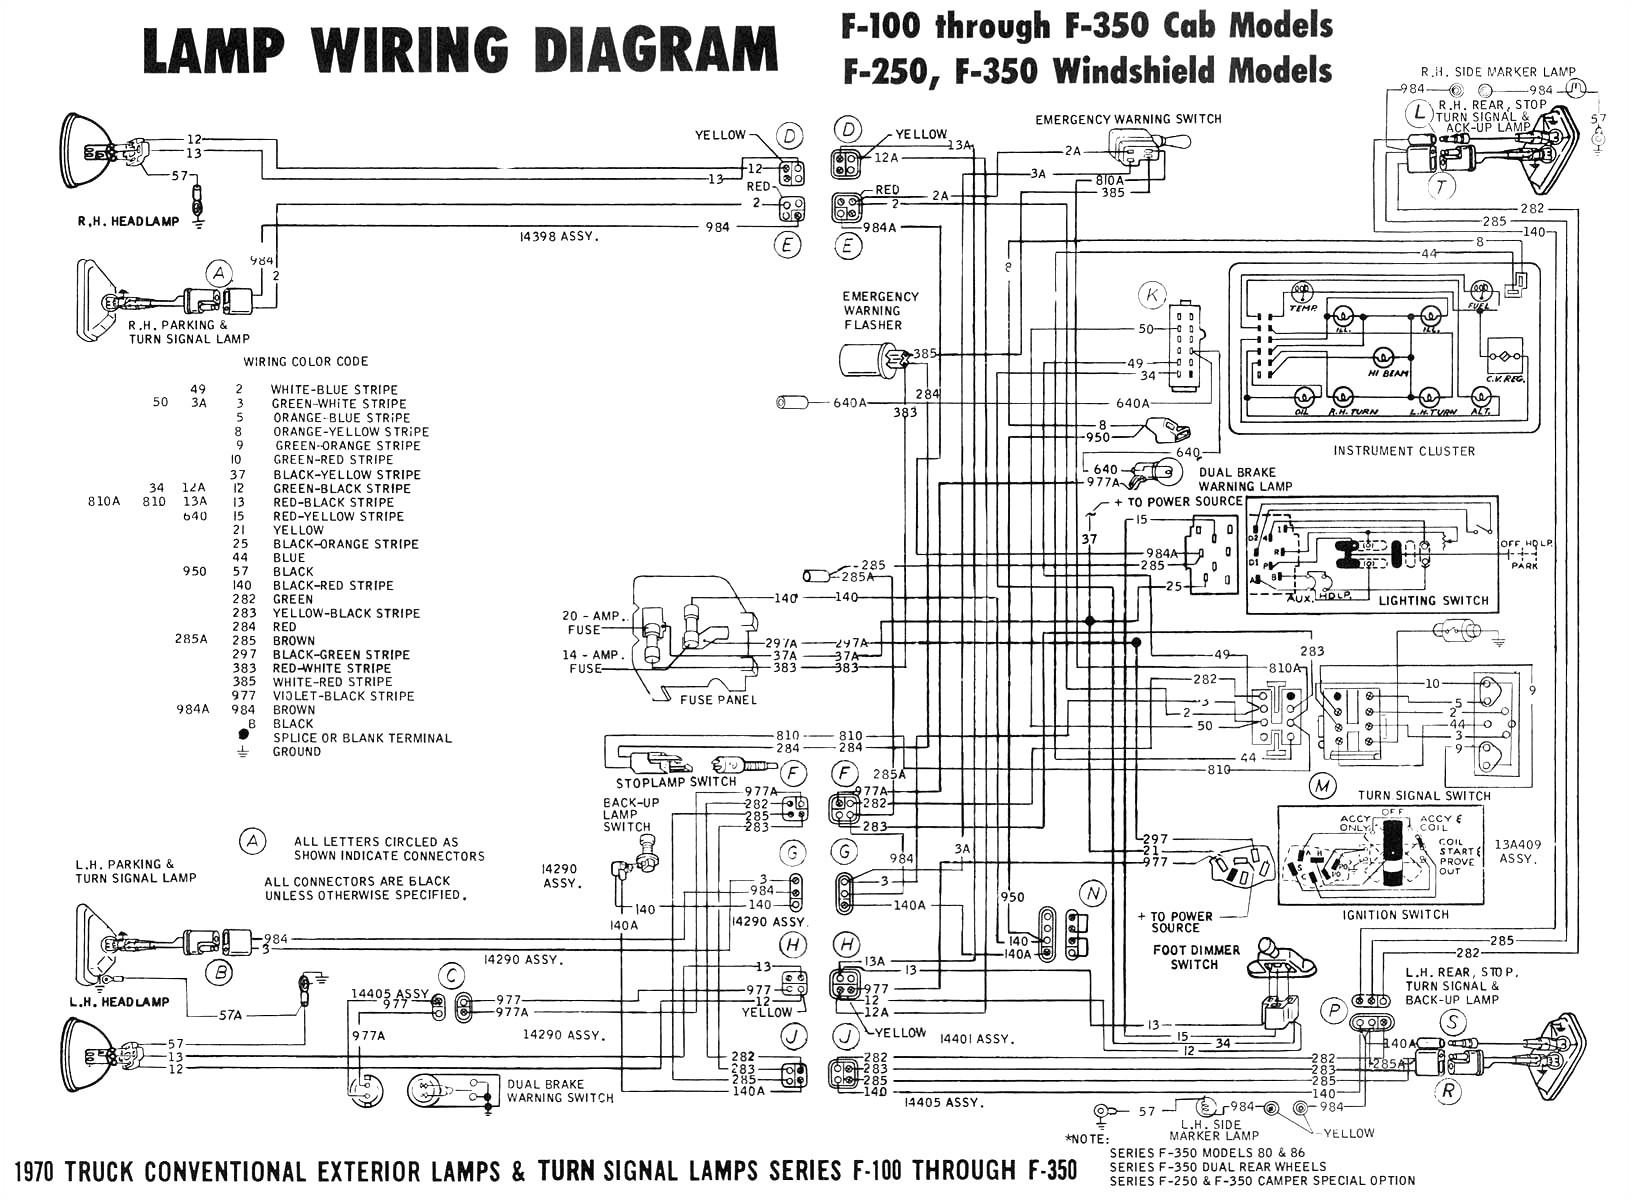 03 f250 wiring diagram wiring diagram for you 03 ford radio wiring diagram 03 f350 wiring diagram